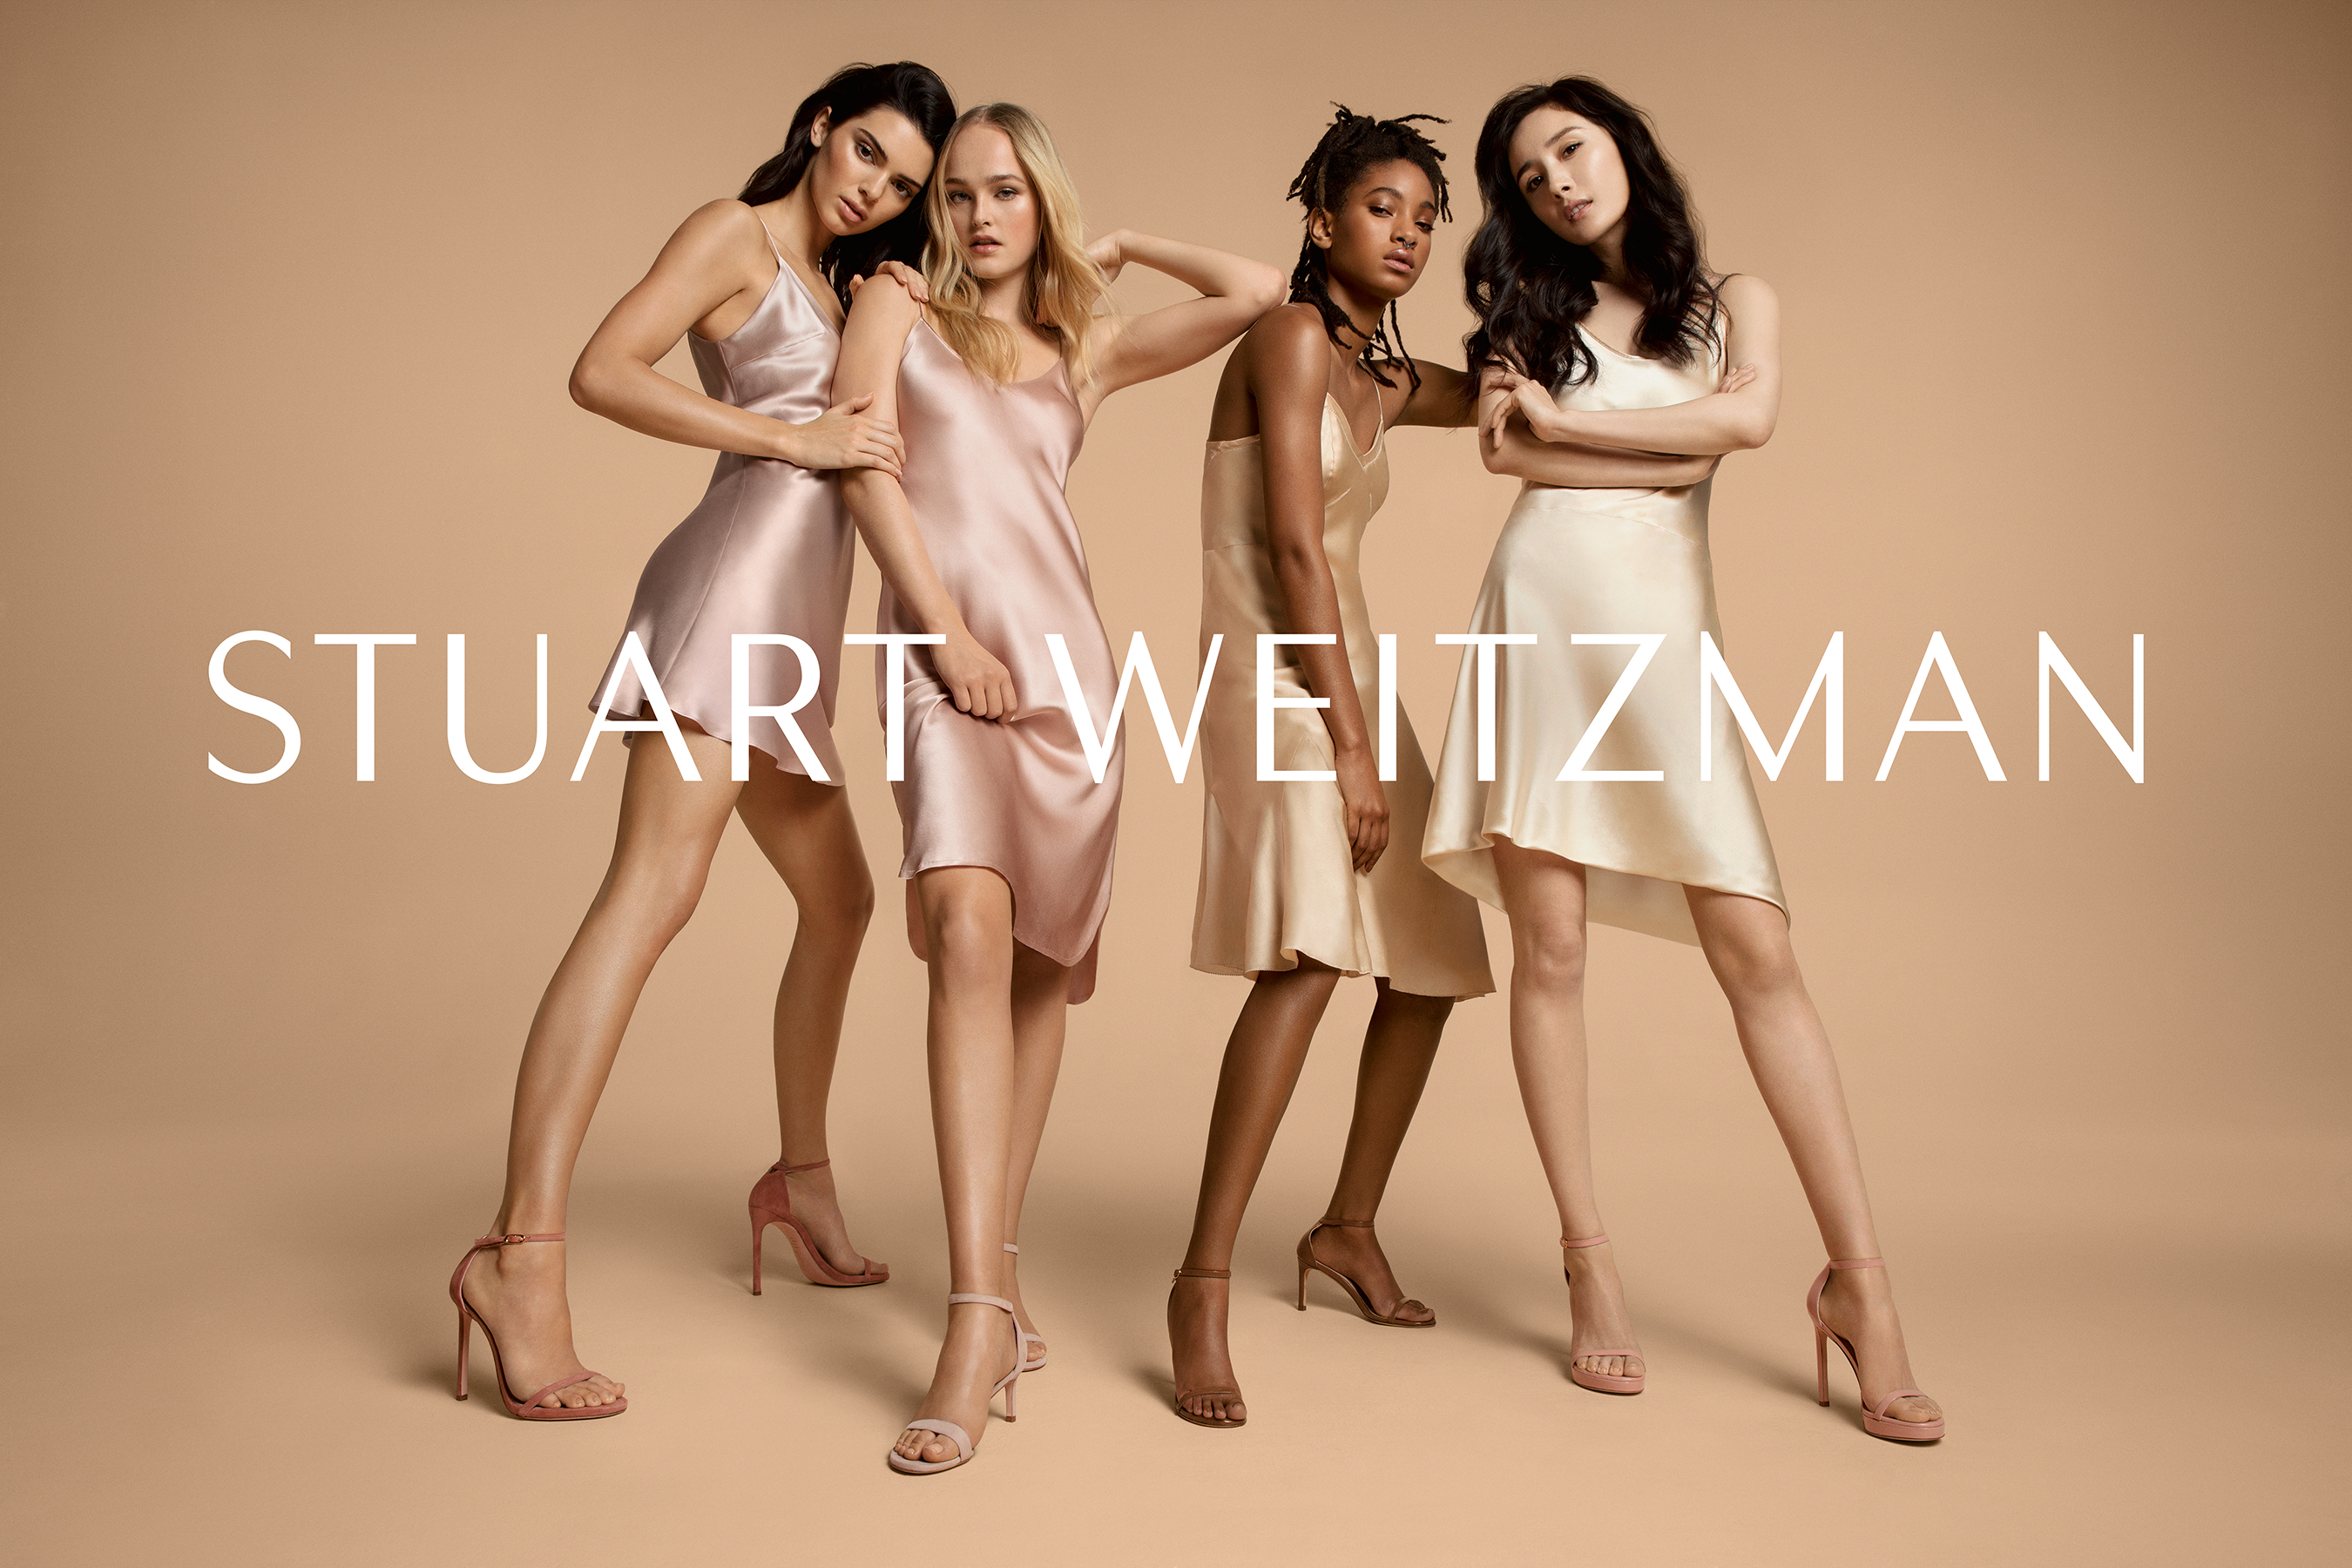 Stuart weitzman friends and family 2019